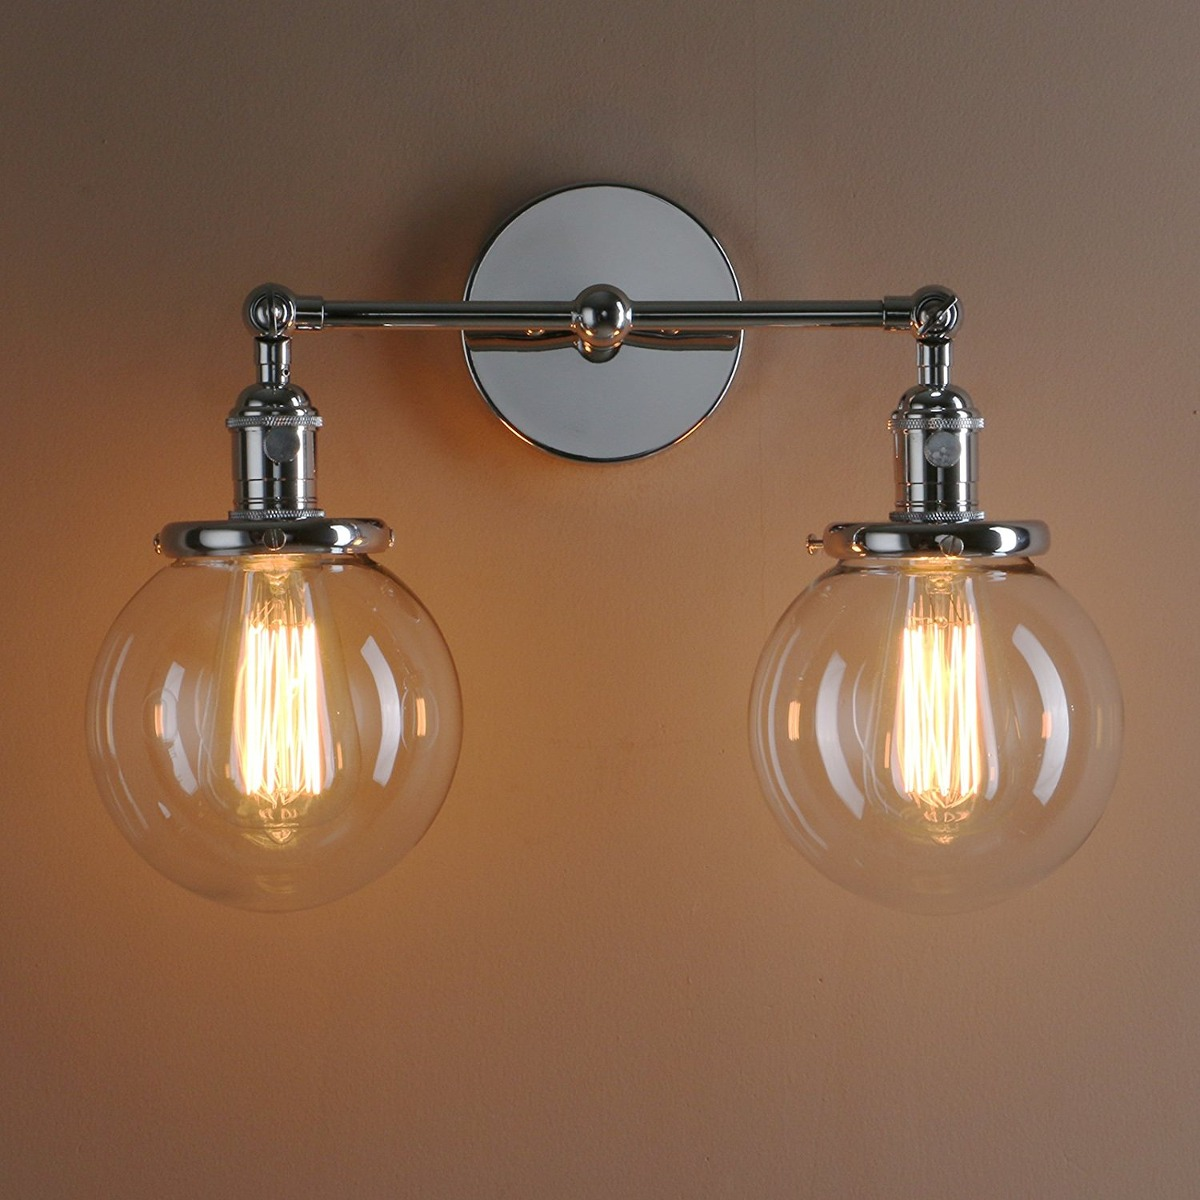 Permo double sconce vintage industrial antique 2 lights wall cargando zoom aloadofball Image collections